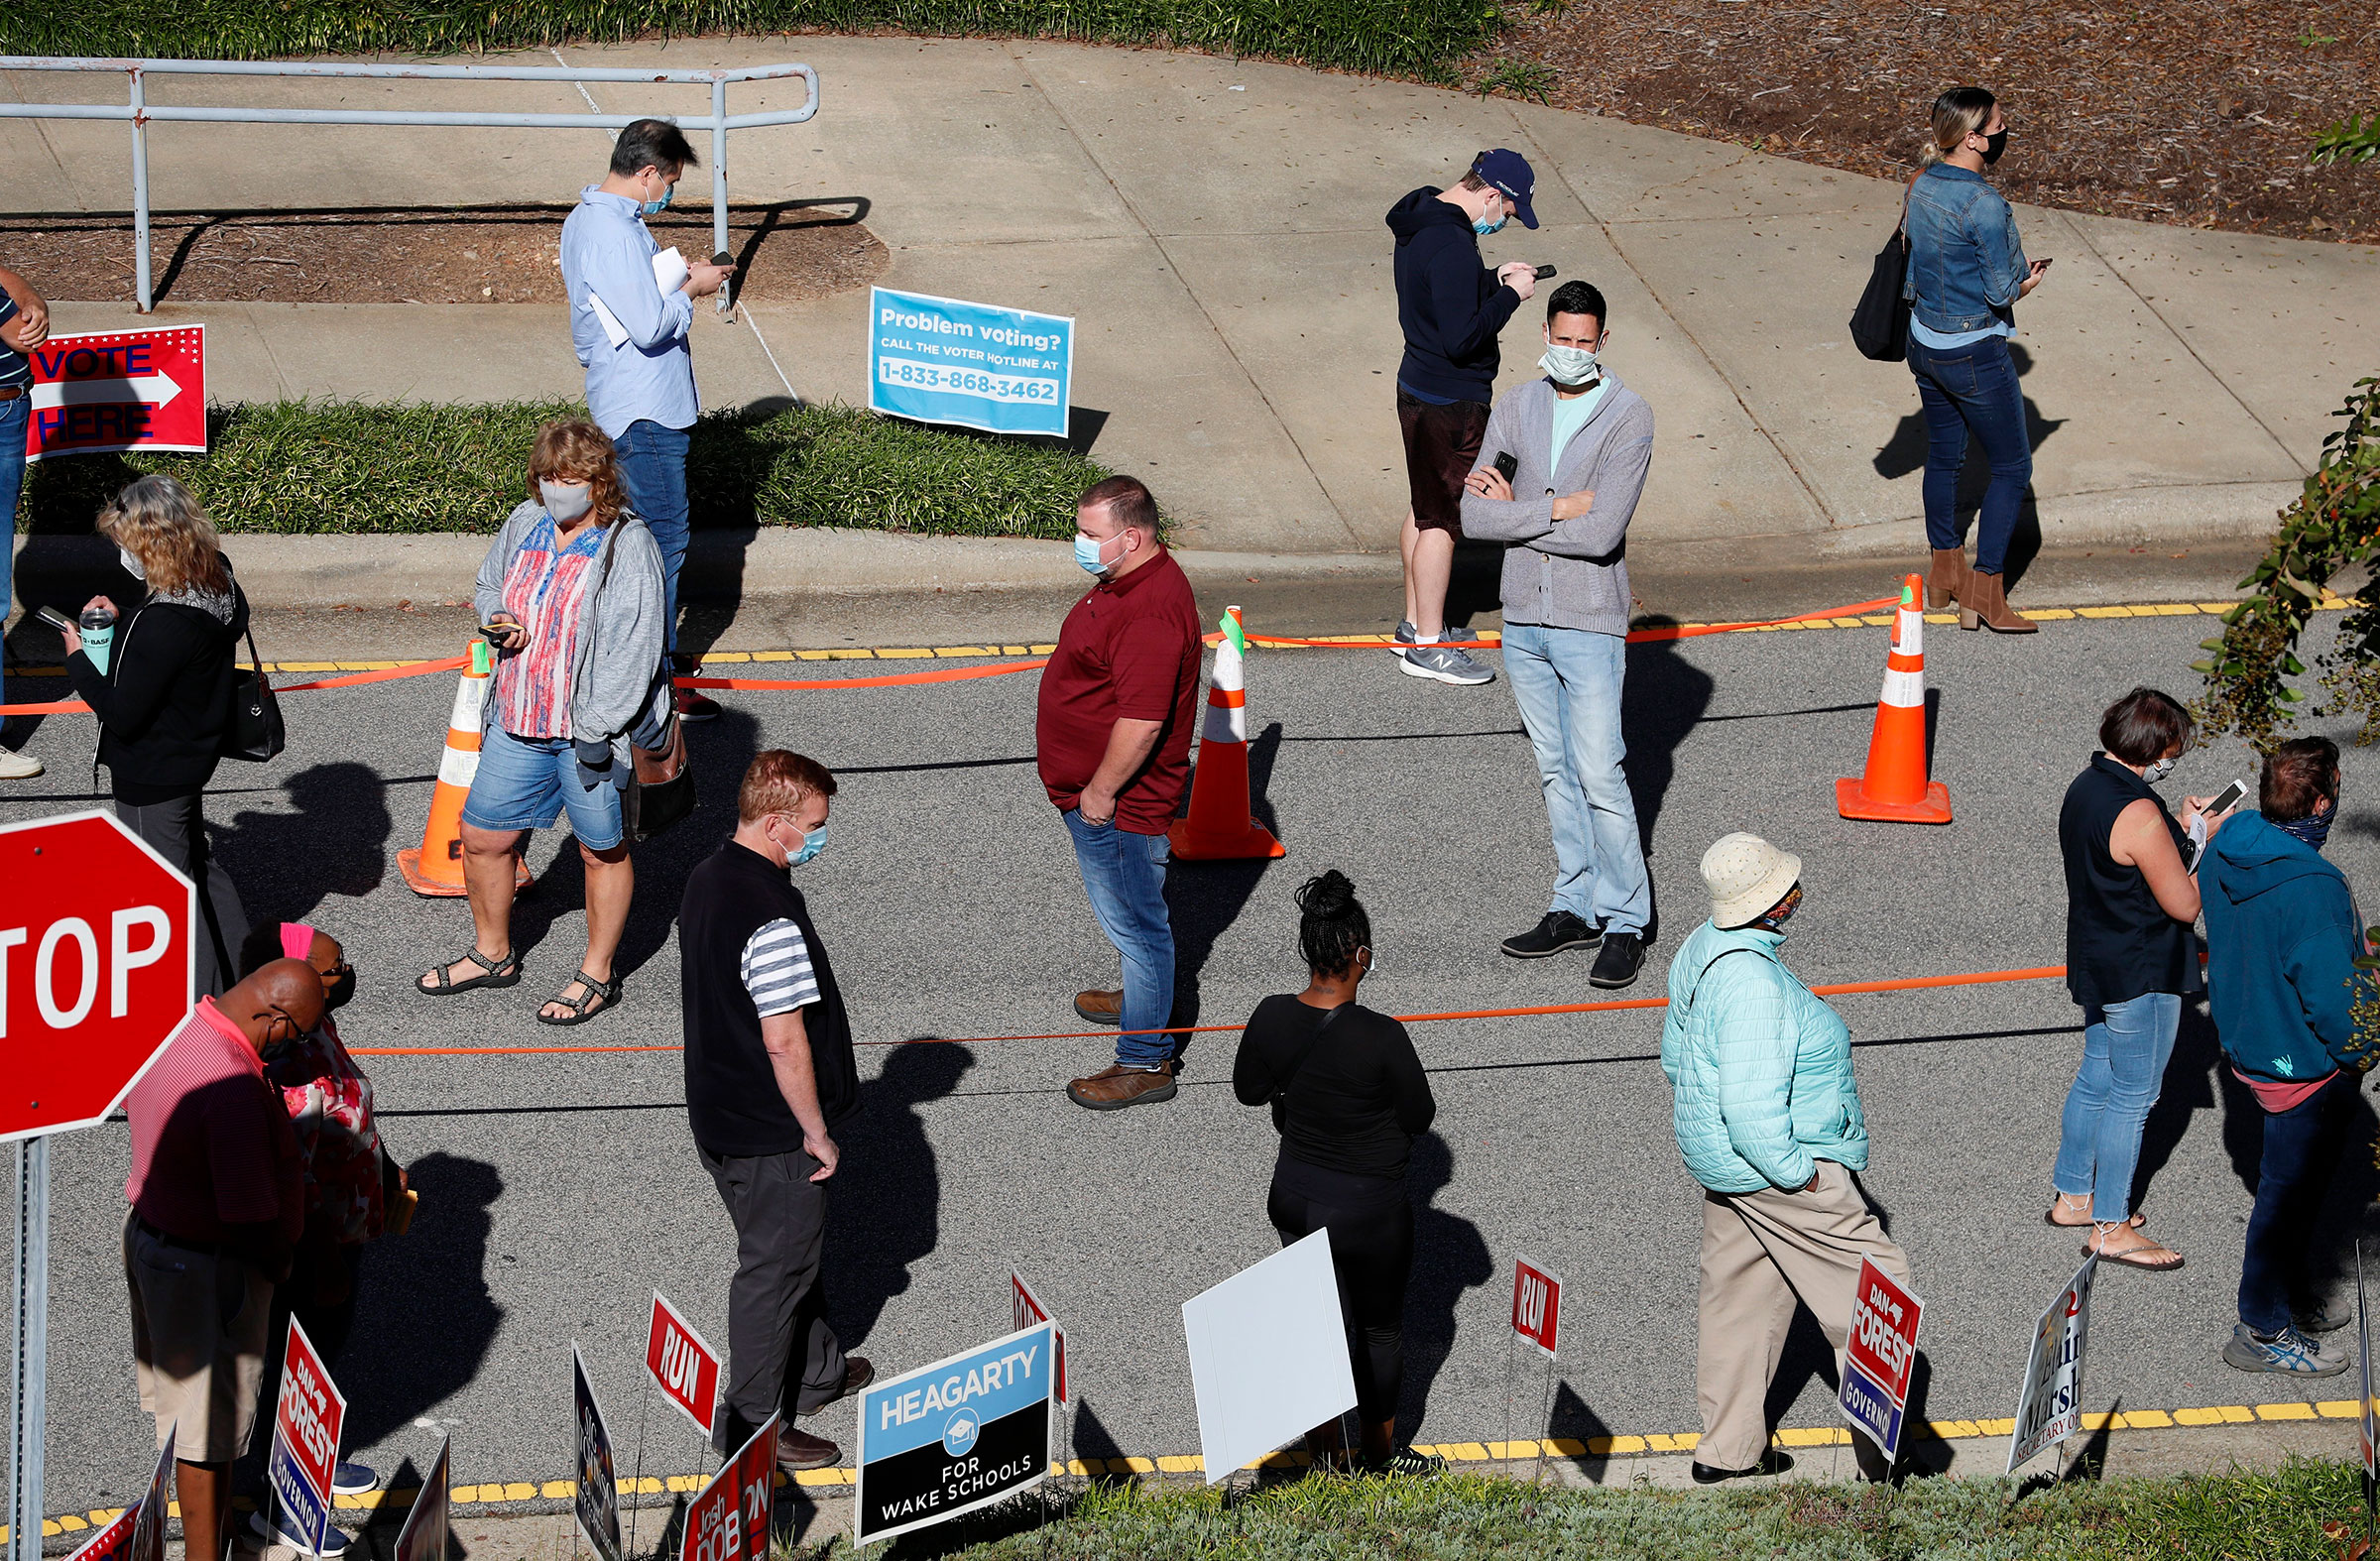 Voters wait in line outside the Herbert C. Young Community Center in Cary, N.C. on the first day of early voting on, Oct. 15, 2020.